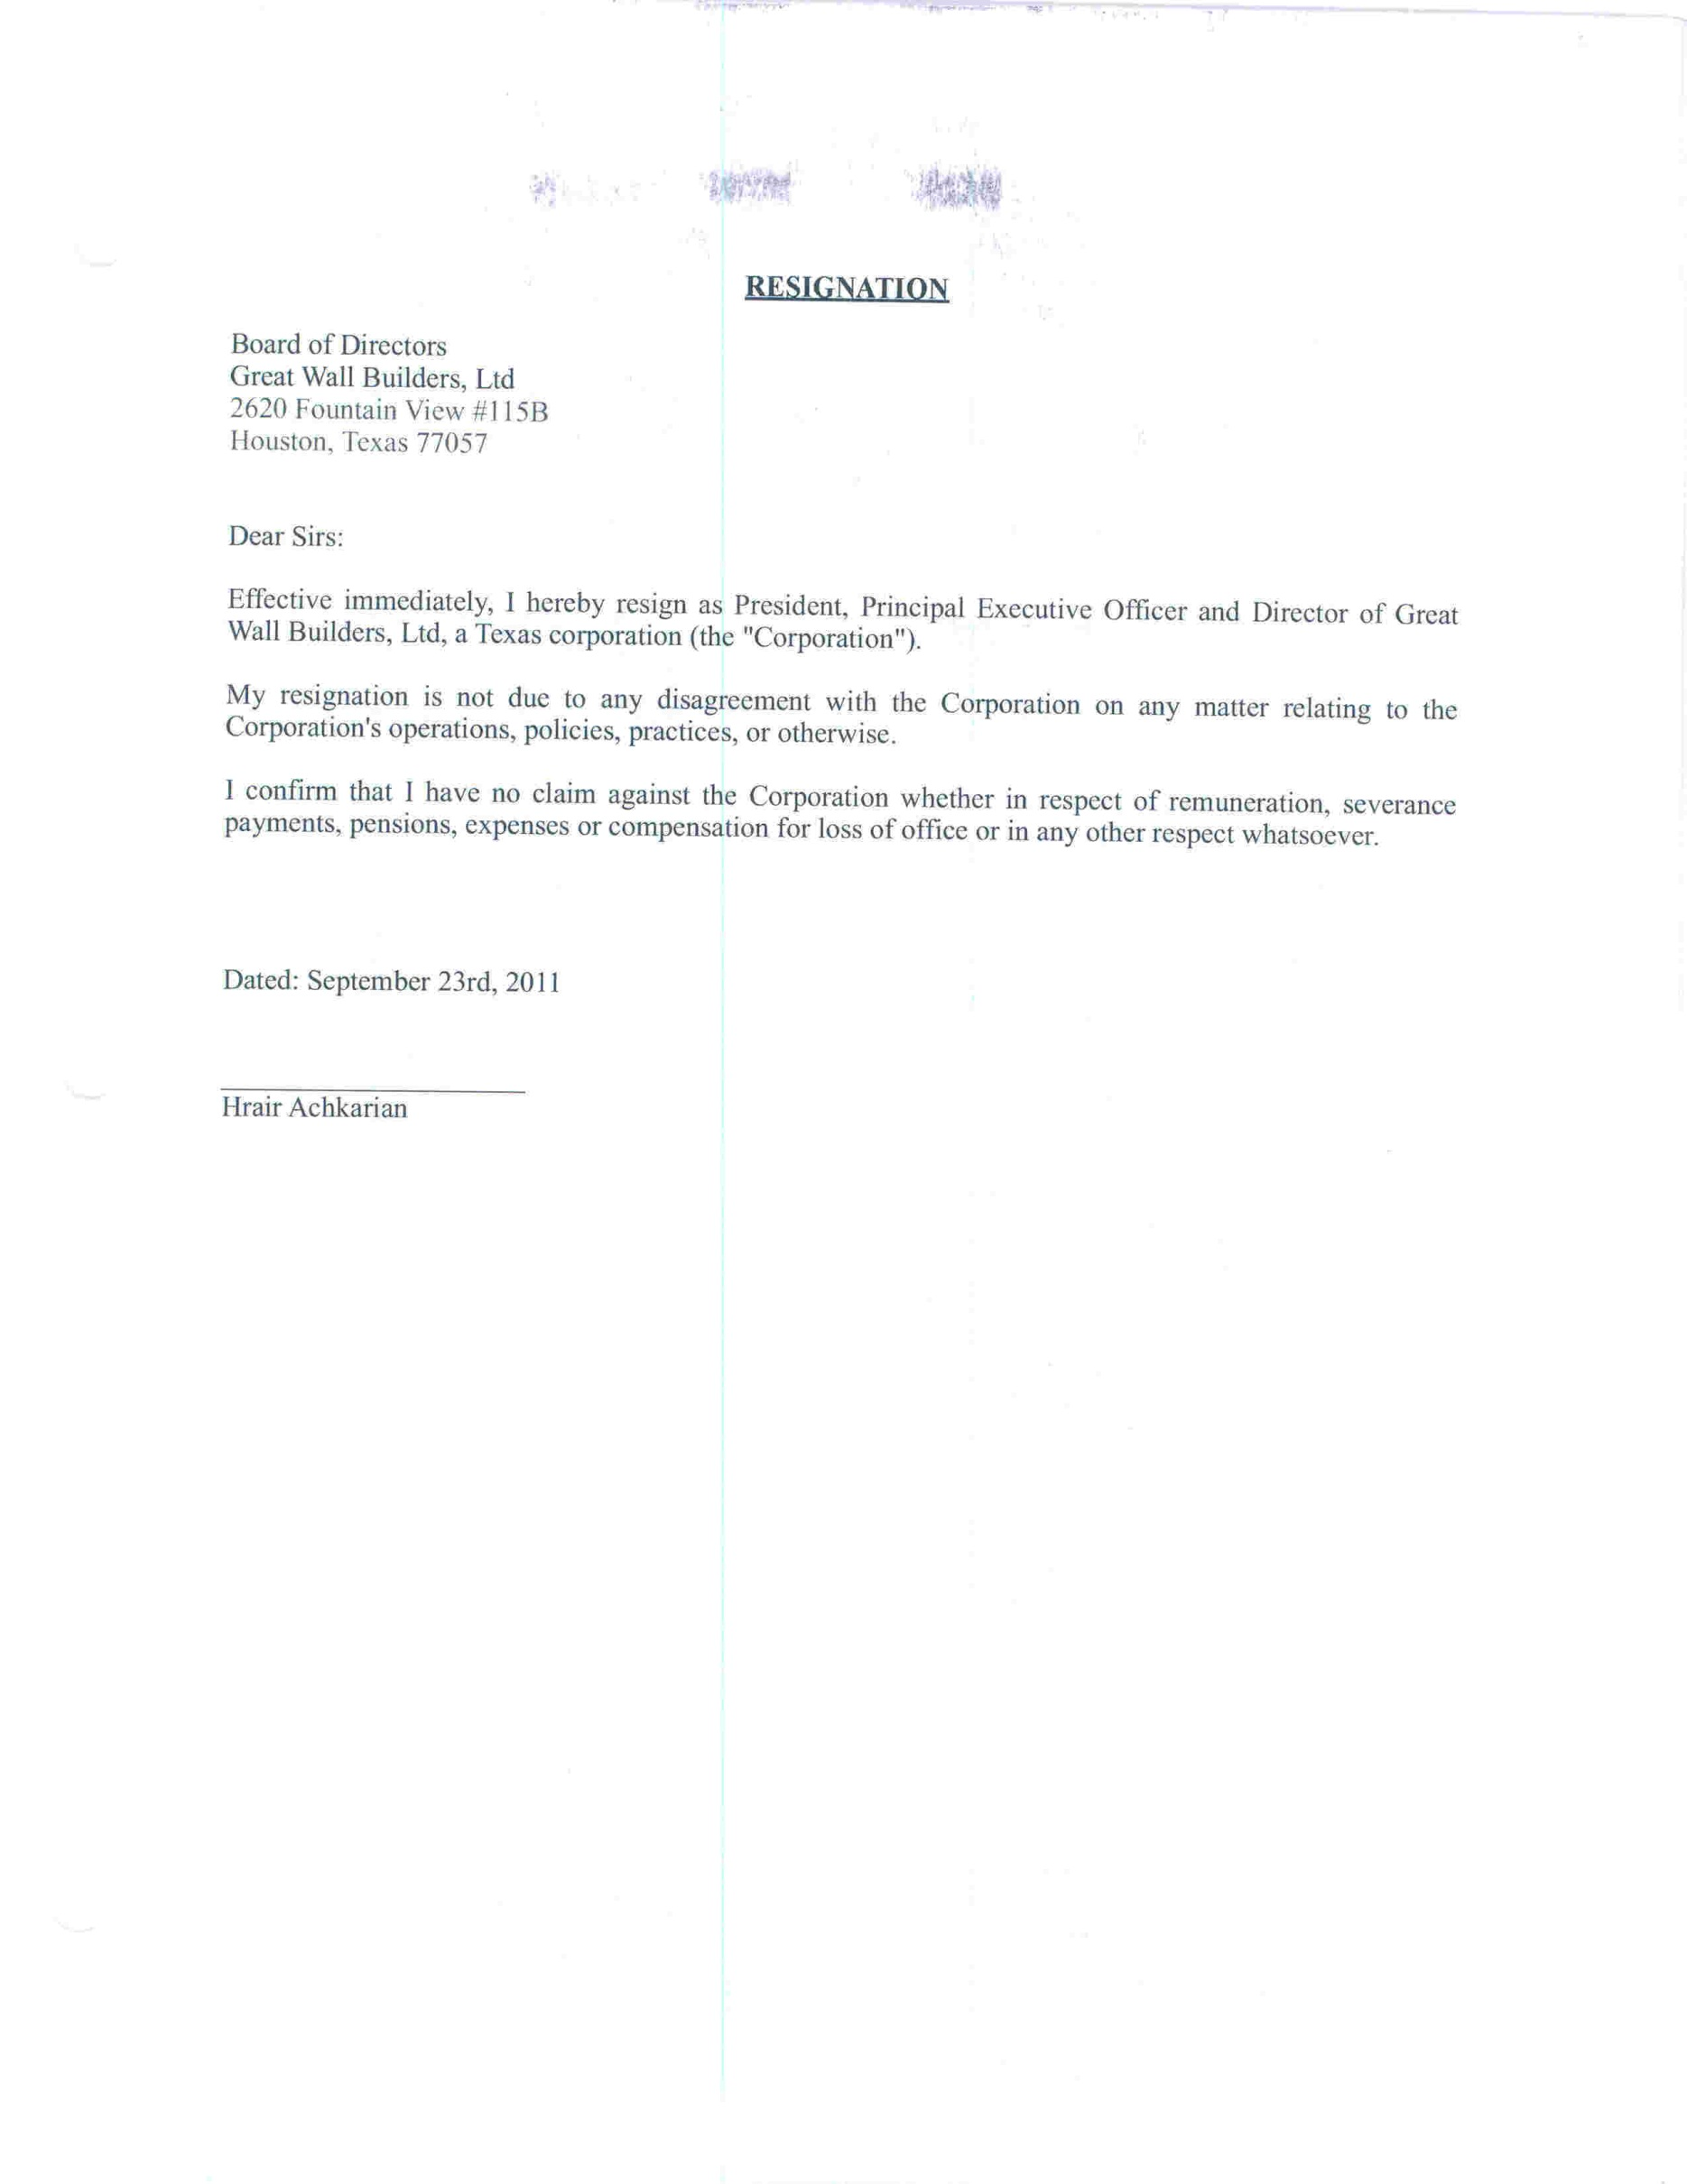 Resignation Letter Engineer | Resume CV Cover Letter